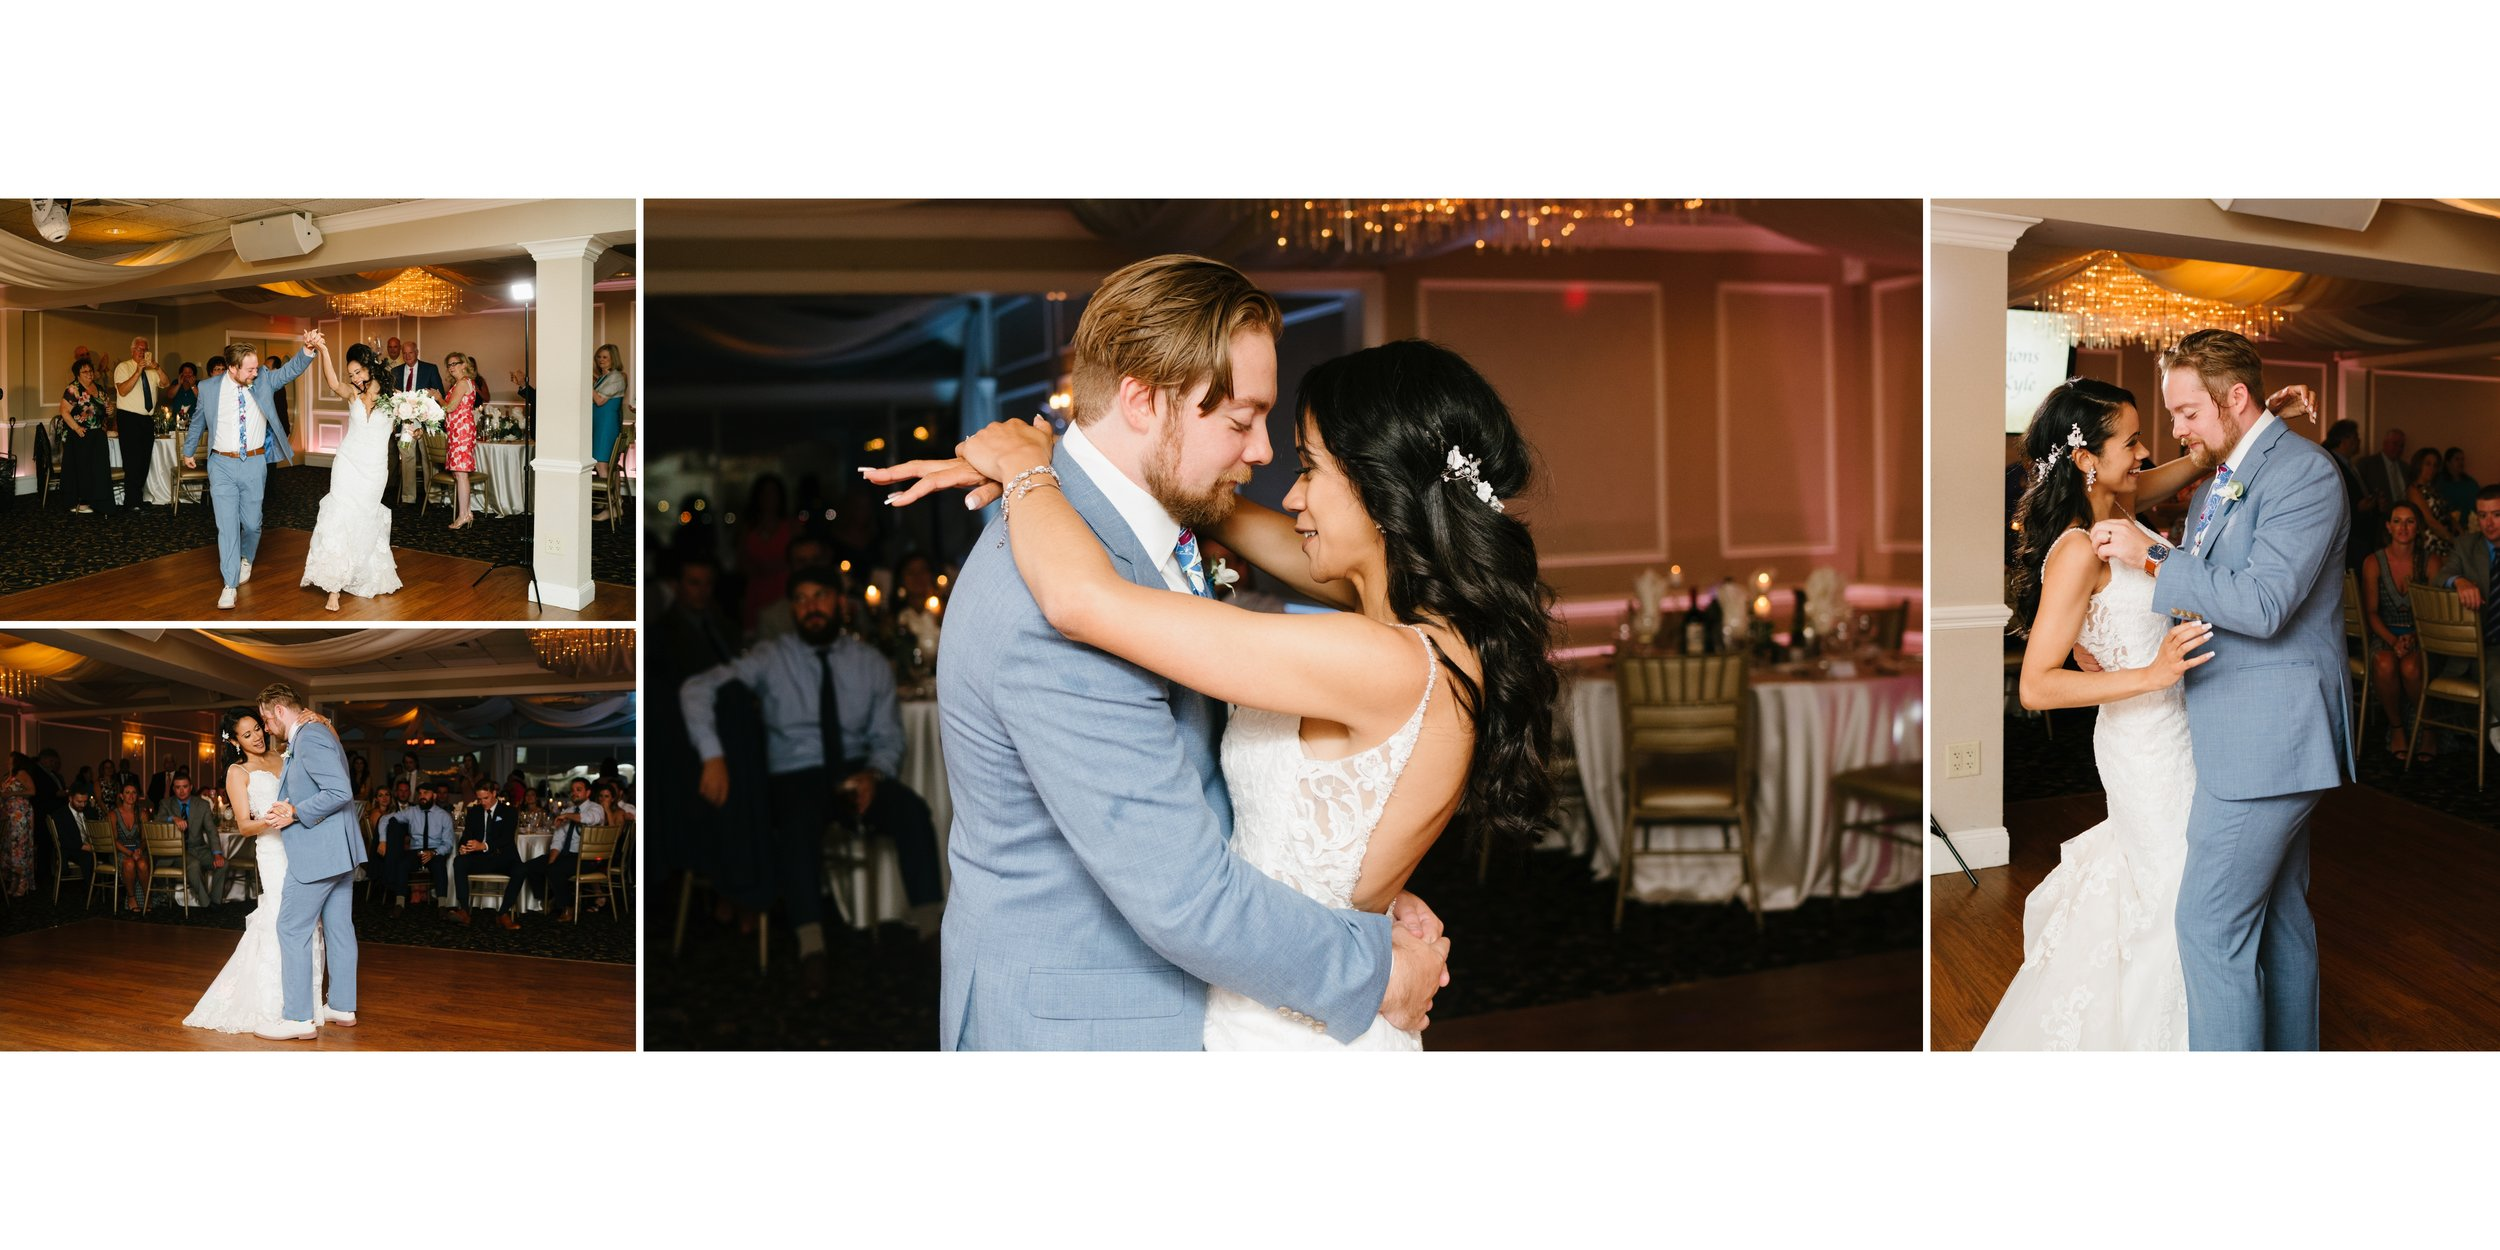 first dance at wedding in los angeles